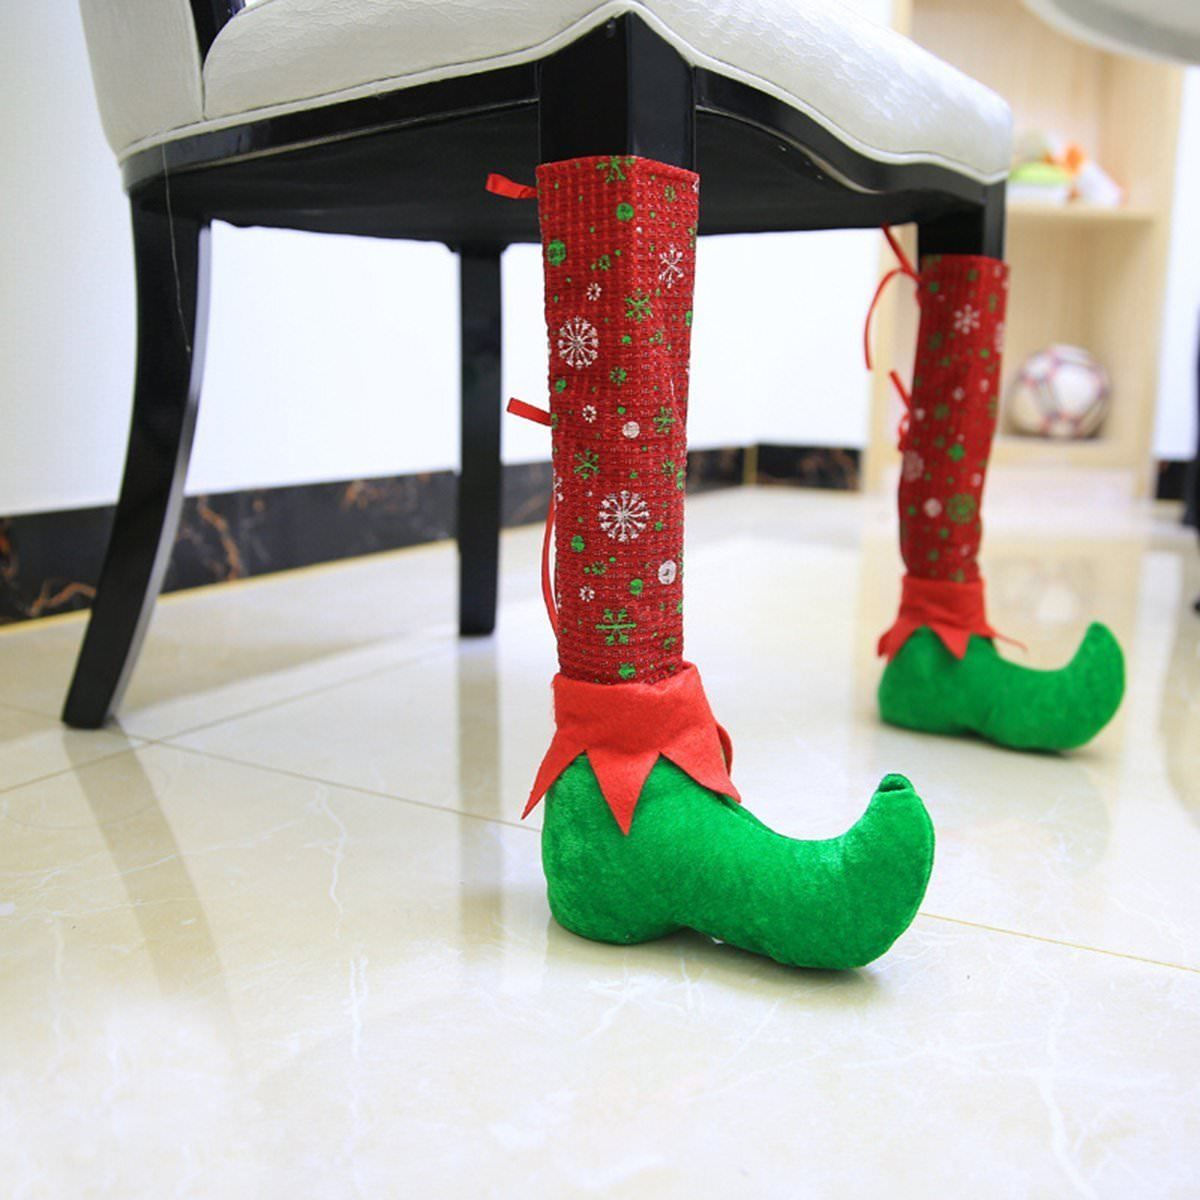 1pc Leather Christmas Chair Leg Table Santa Claus Leg Chair Foot Covers Party Christmas Table Navidad Christmas Decorations A Great Variety Of Goods Home & Garden